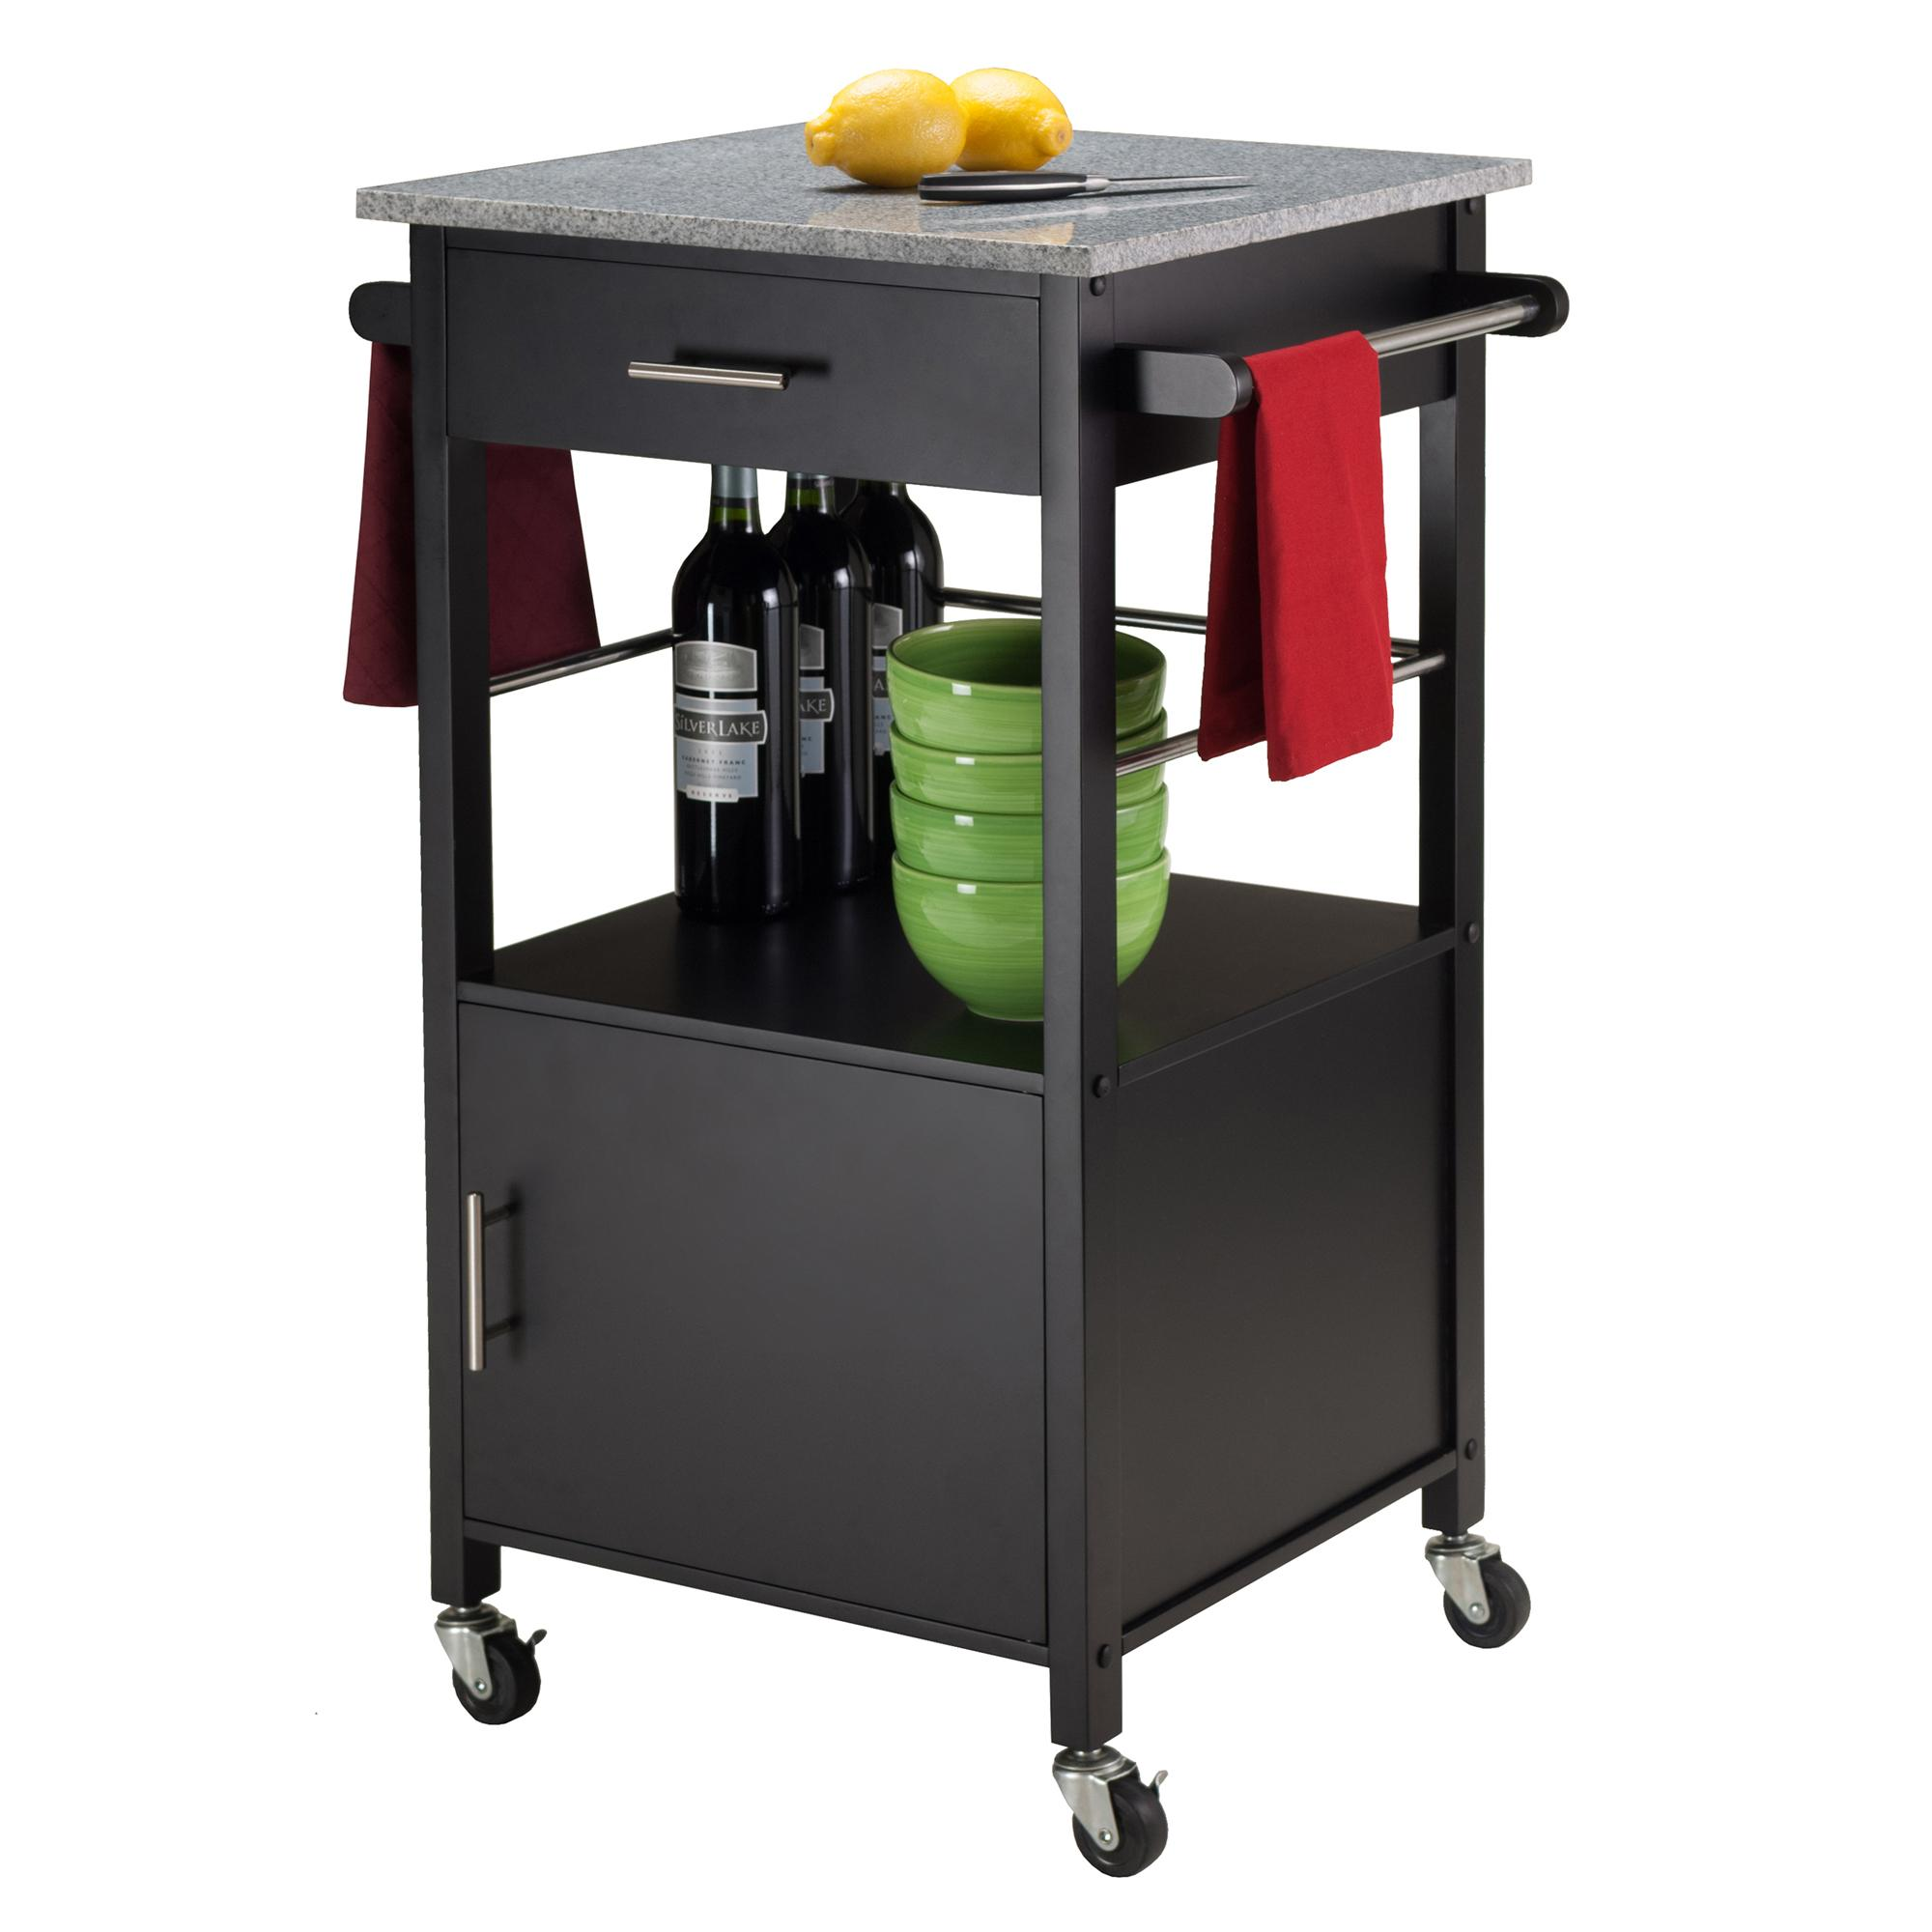 appliance kitchen top cart stainless styles home steel com black walmart ip